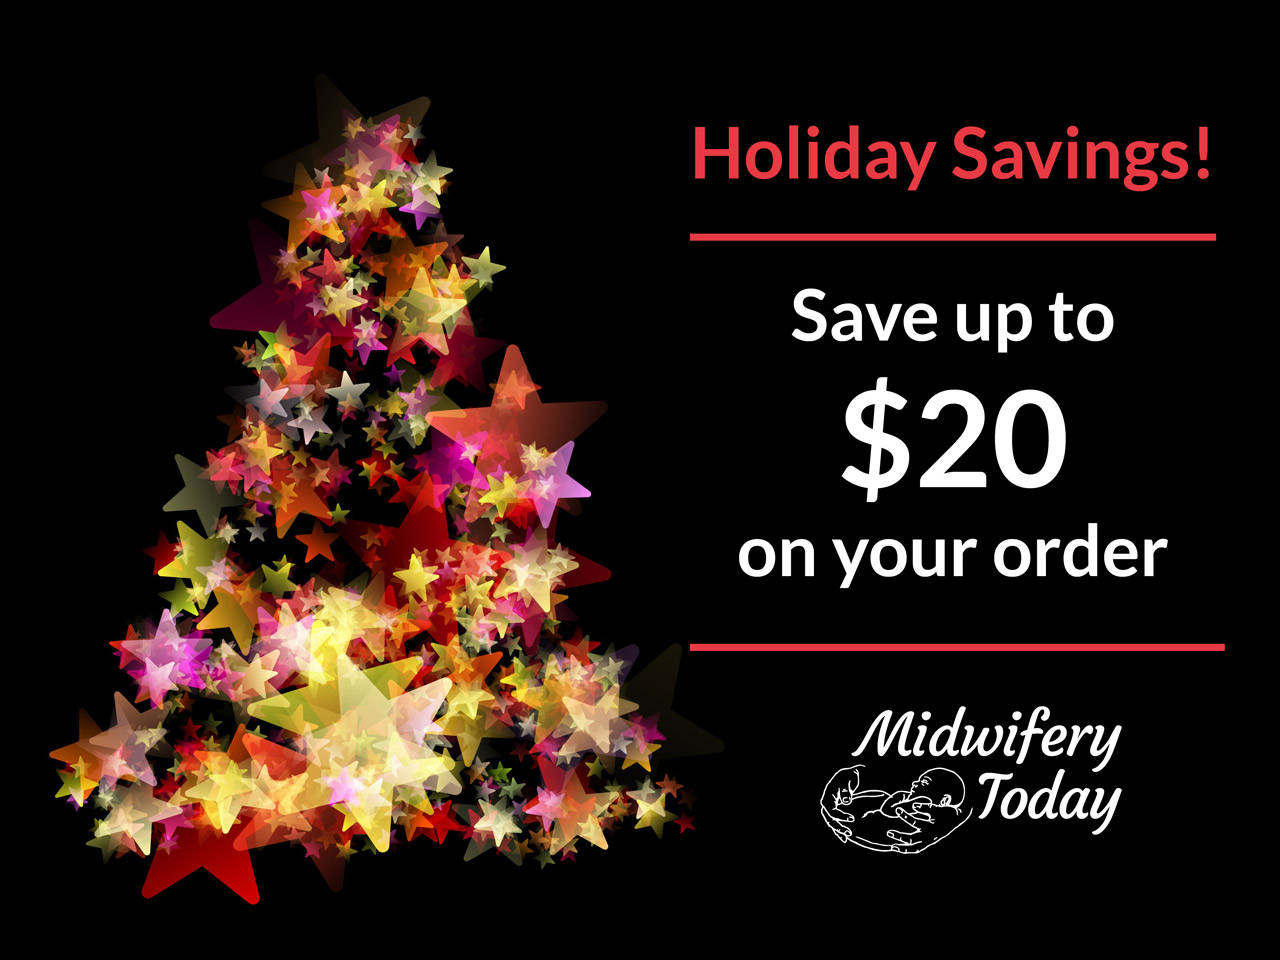 Save up to $20 on your order